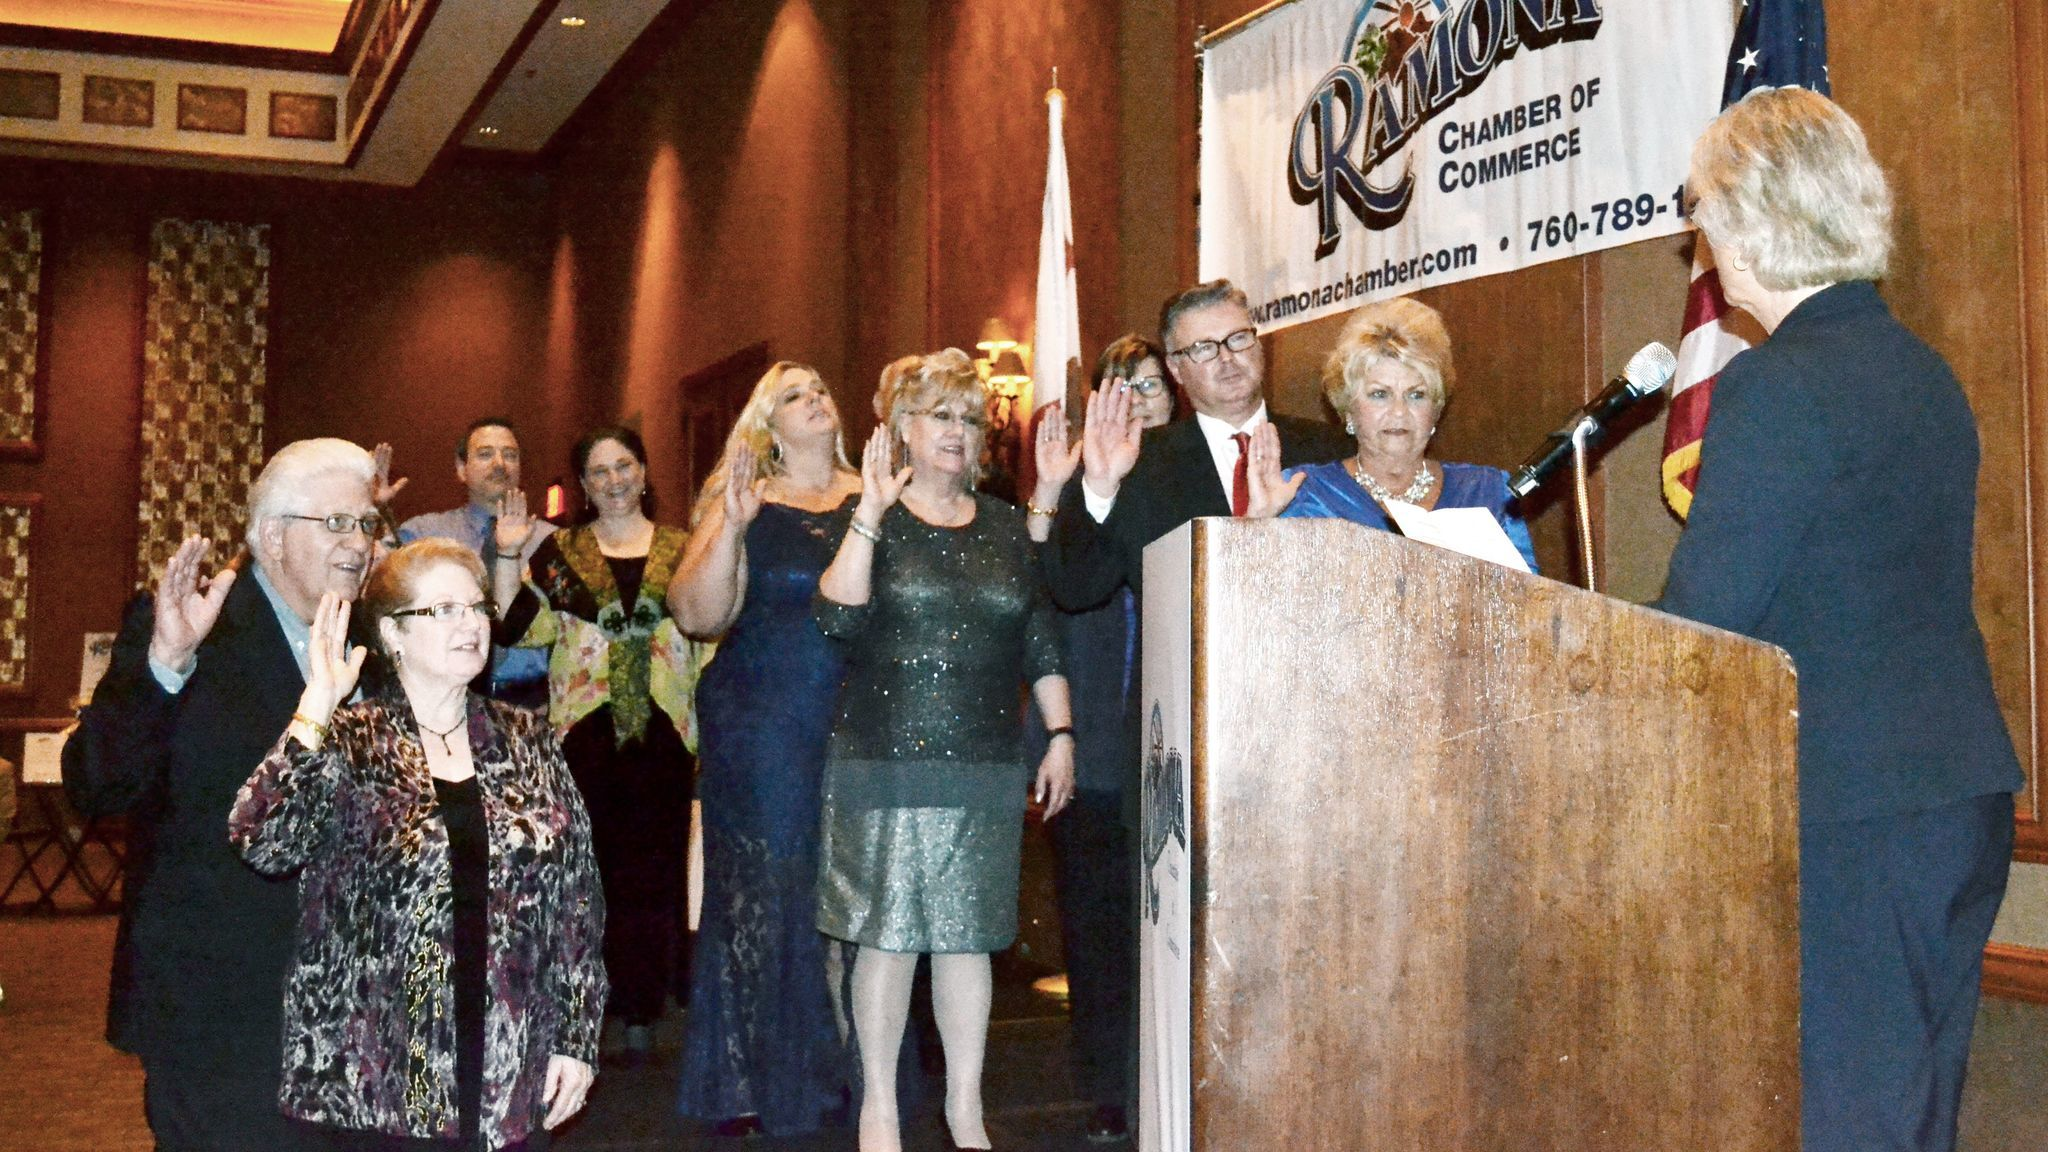 County Supervisor Dianne Jacob, right, swears in the 2017 Ramona Chamber of Commerce Board of Directors.